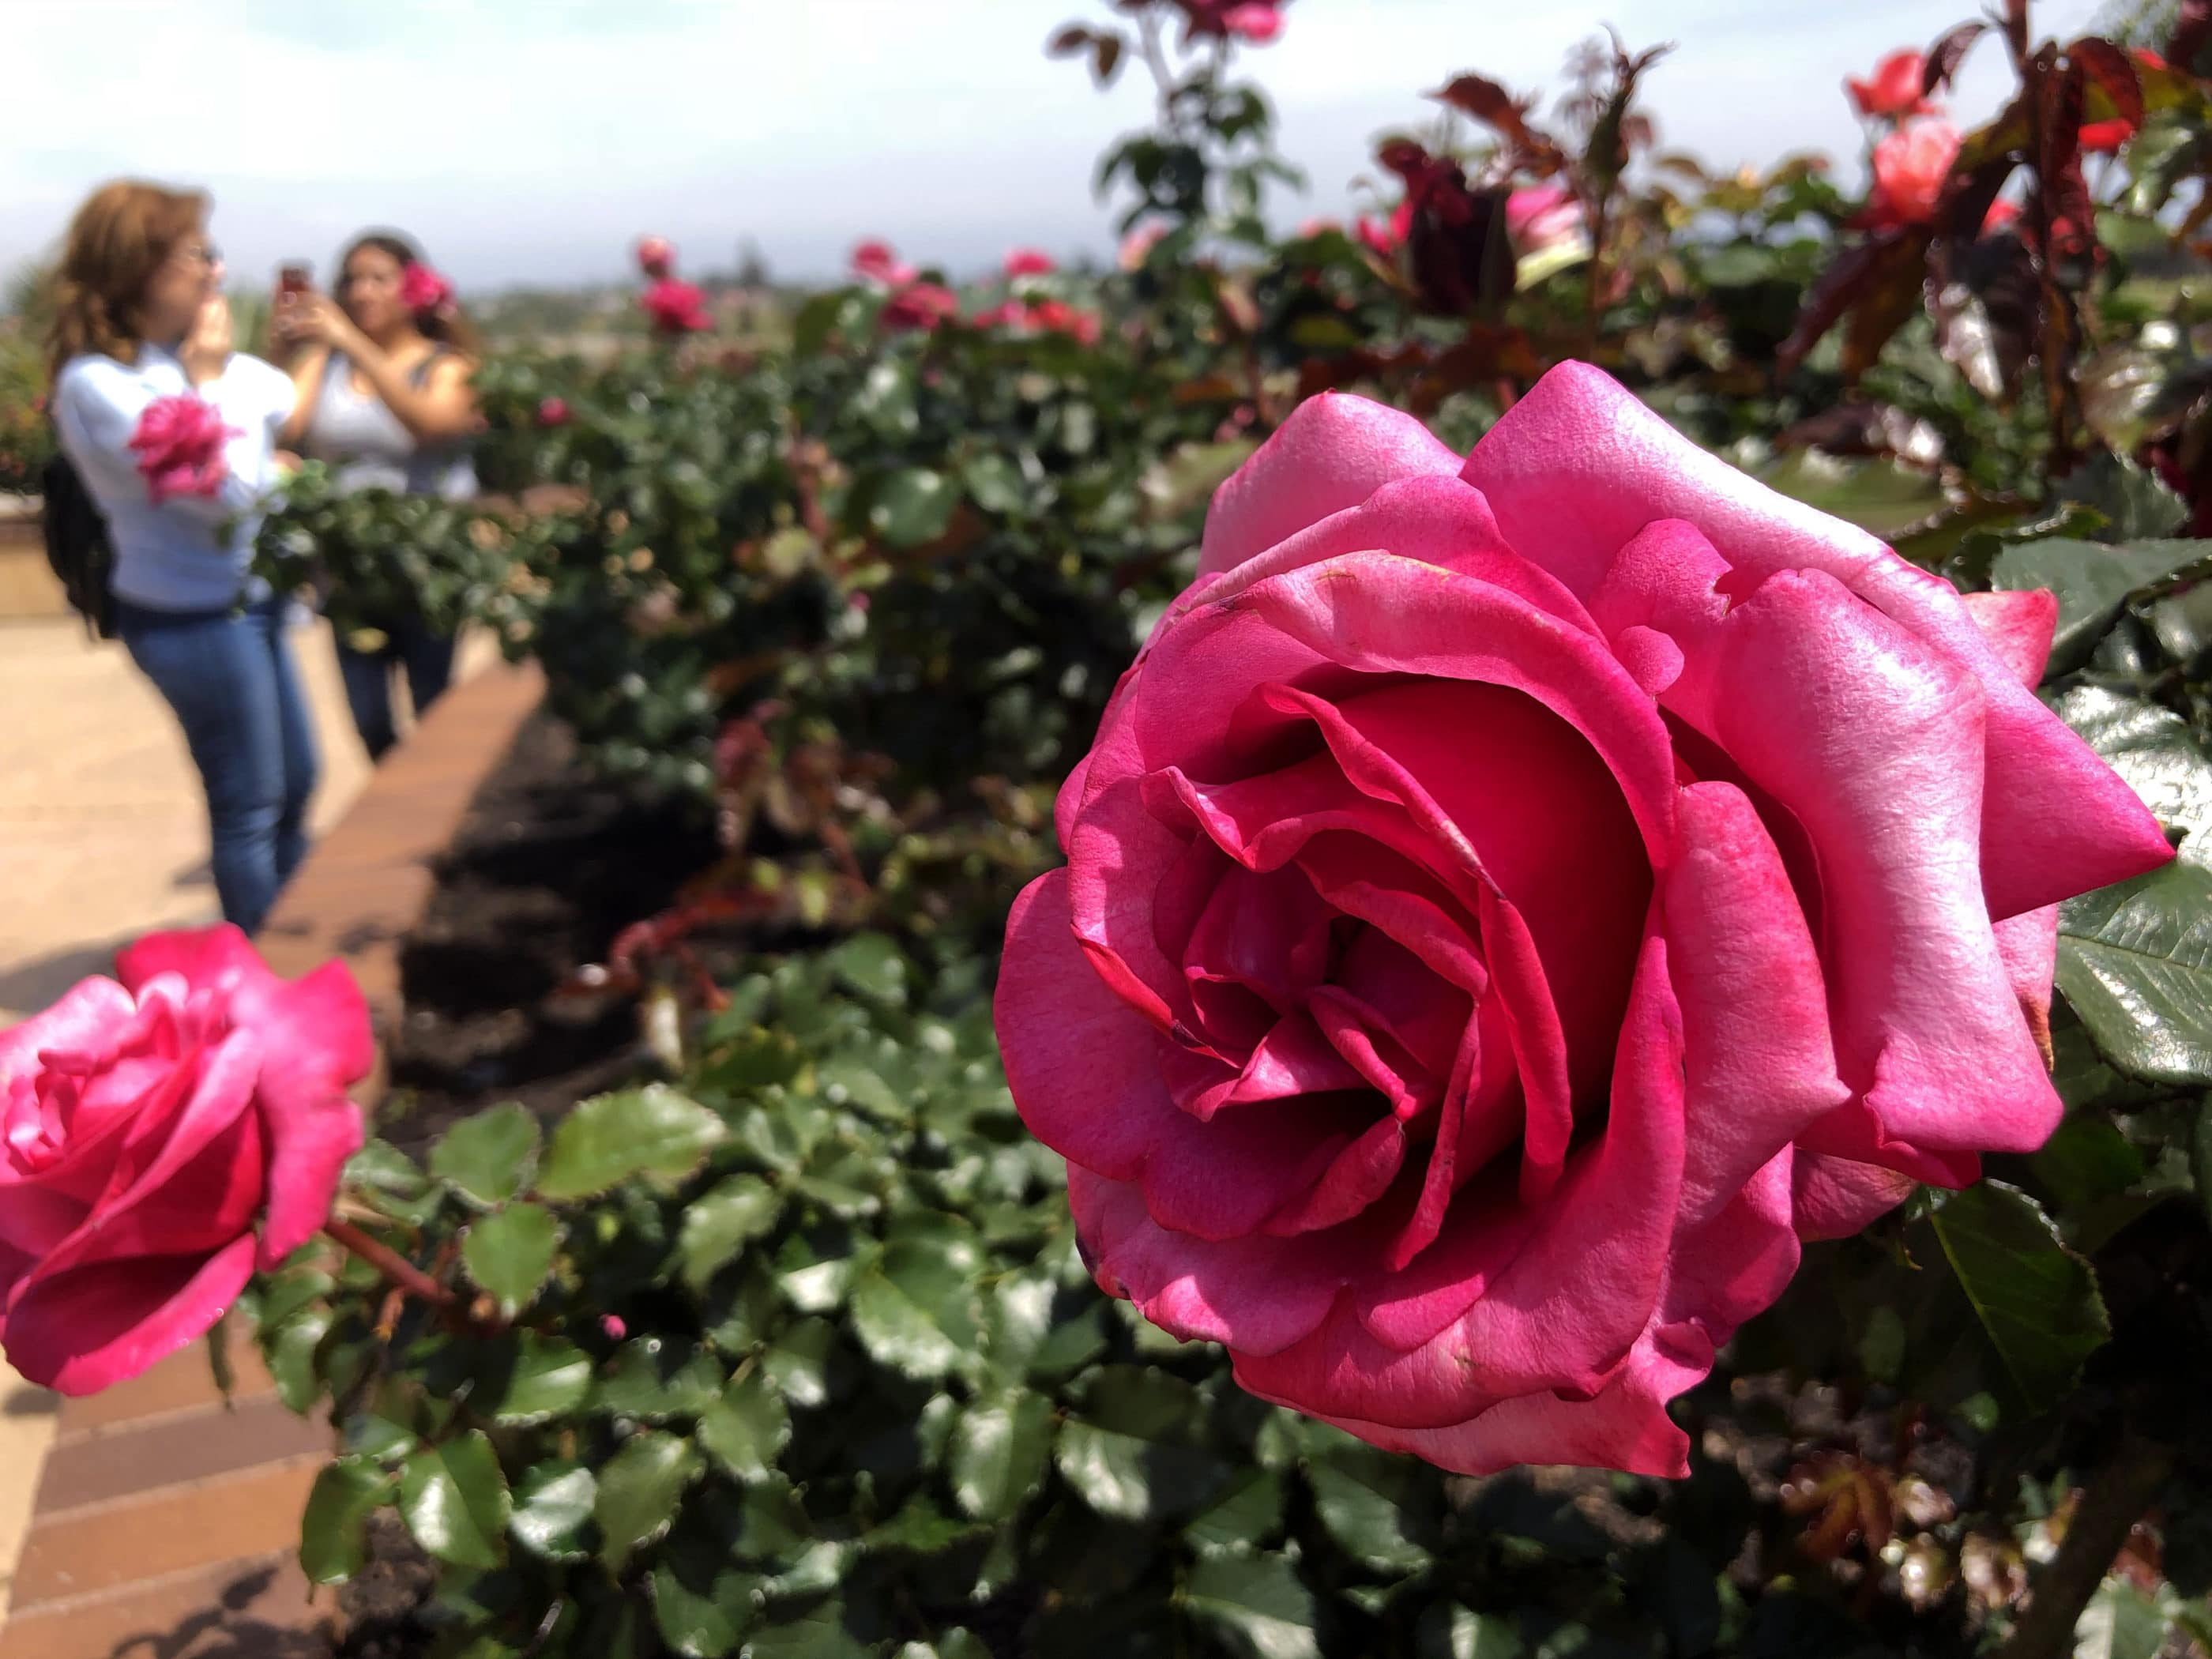 Things to do in Balboa Park: Inez Grant Memorial Rose Garden